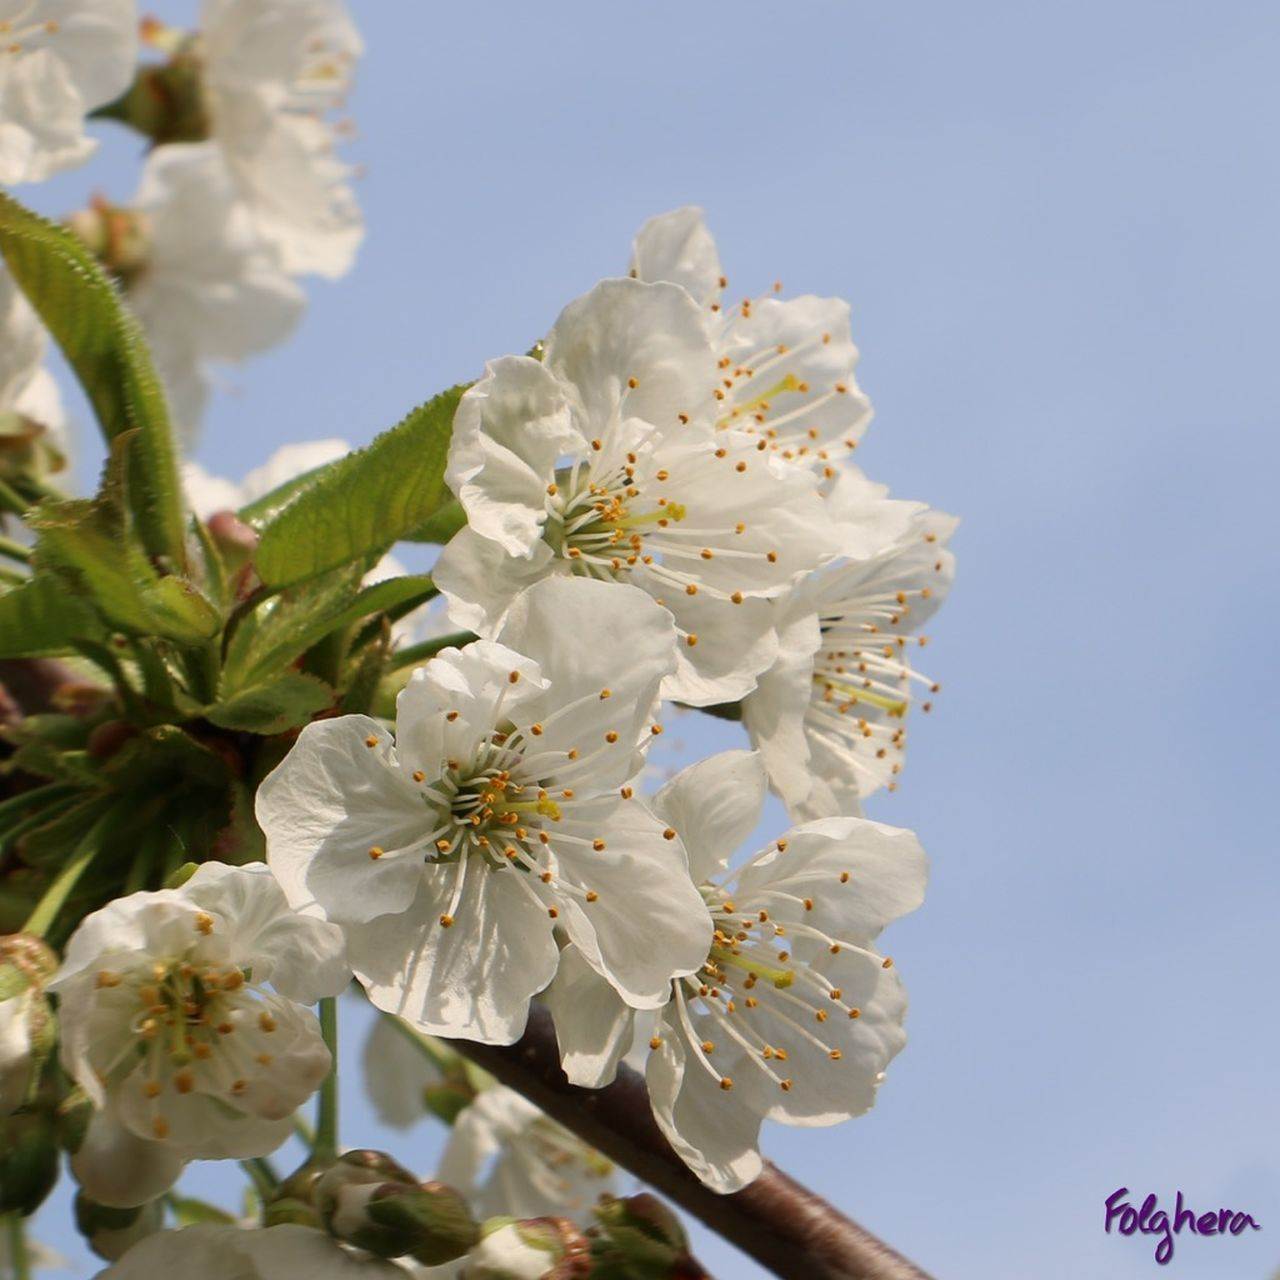 cherry flower - fiore di ciliegio - flor de cerezo - вишня в цвету - #cherry #tree #nature #pictureoftheday #naturaamica #vegan #flowers Nature Enjoying Life Vegan Cherry